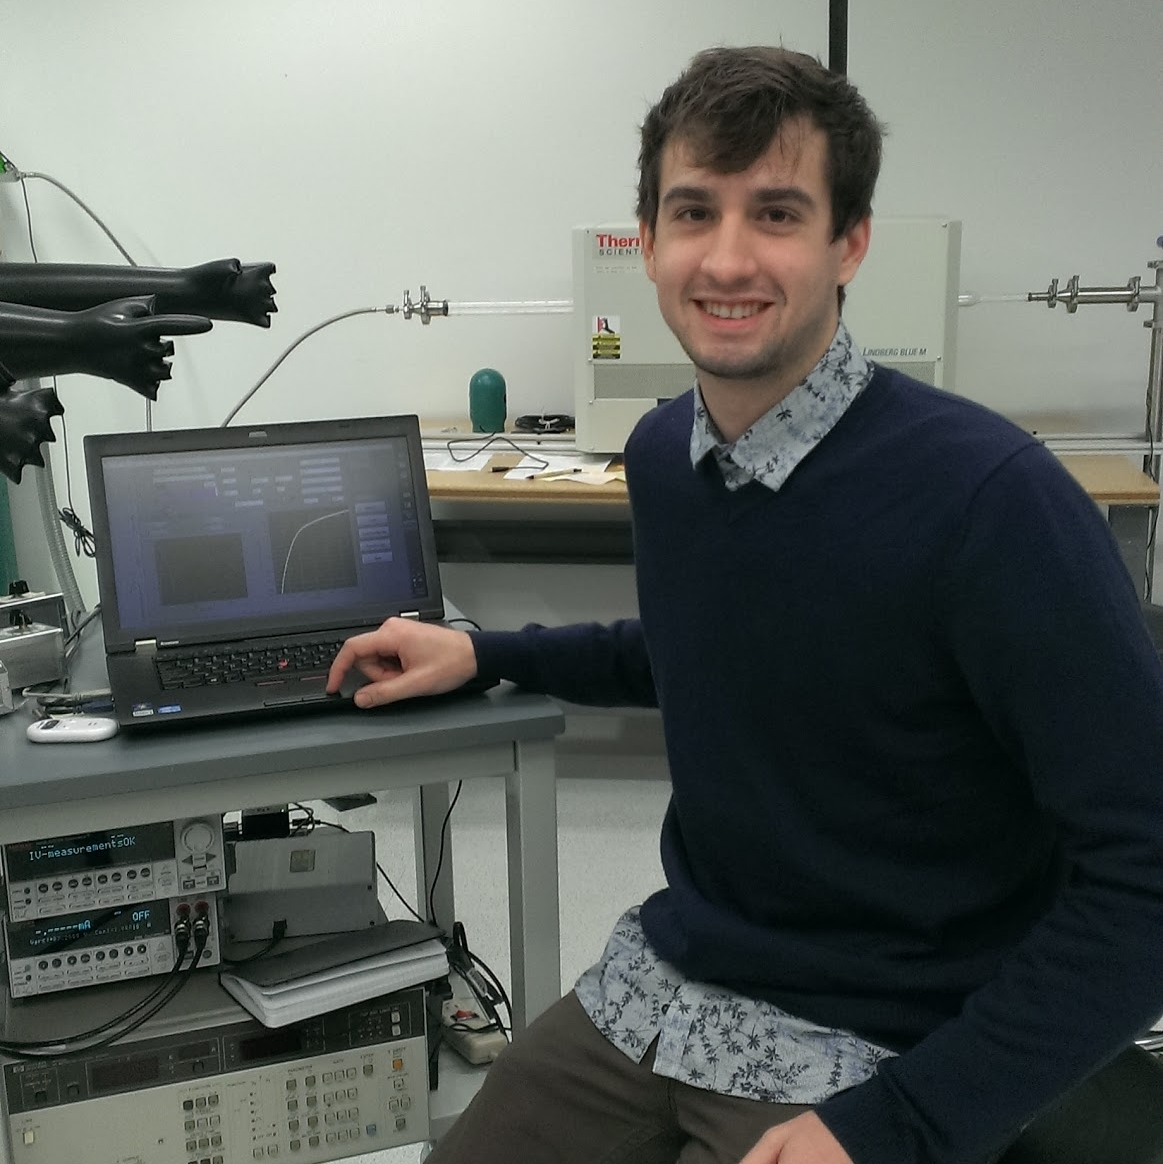 Ross Kerner [Graduate Student] - Materials Science B.A. and ELE graduate student with experience starting interdisciplinary projects.